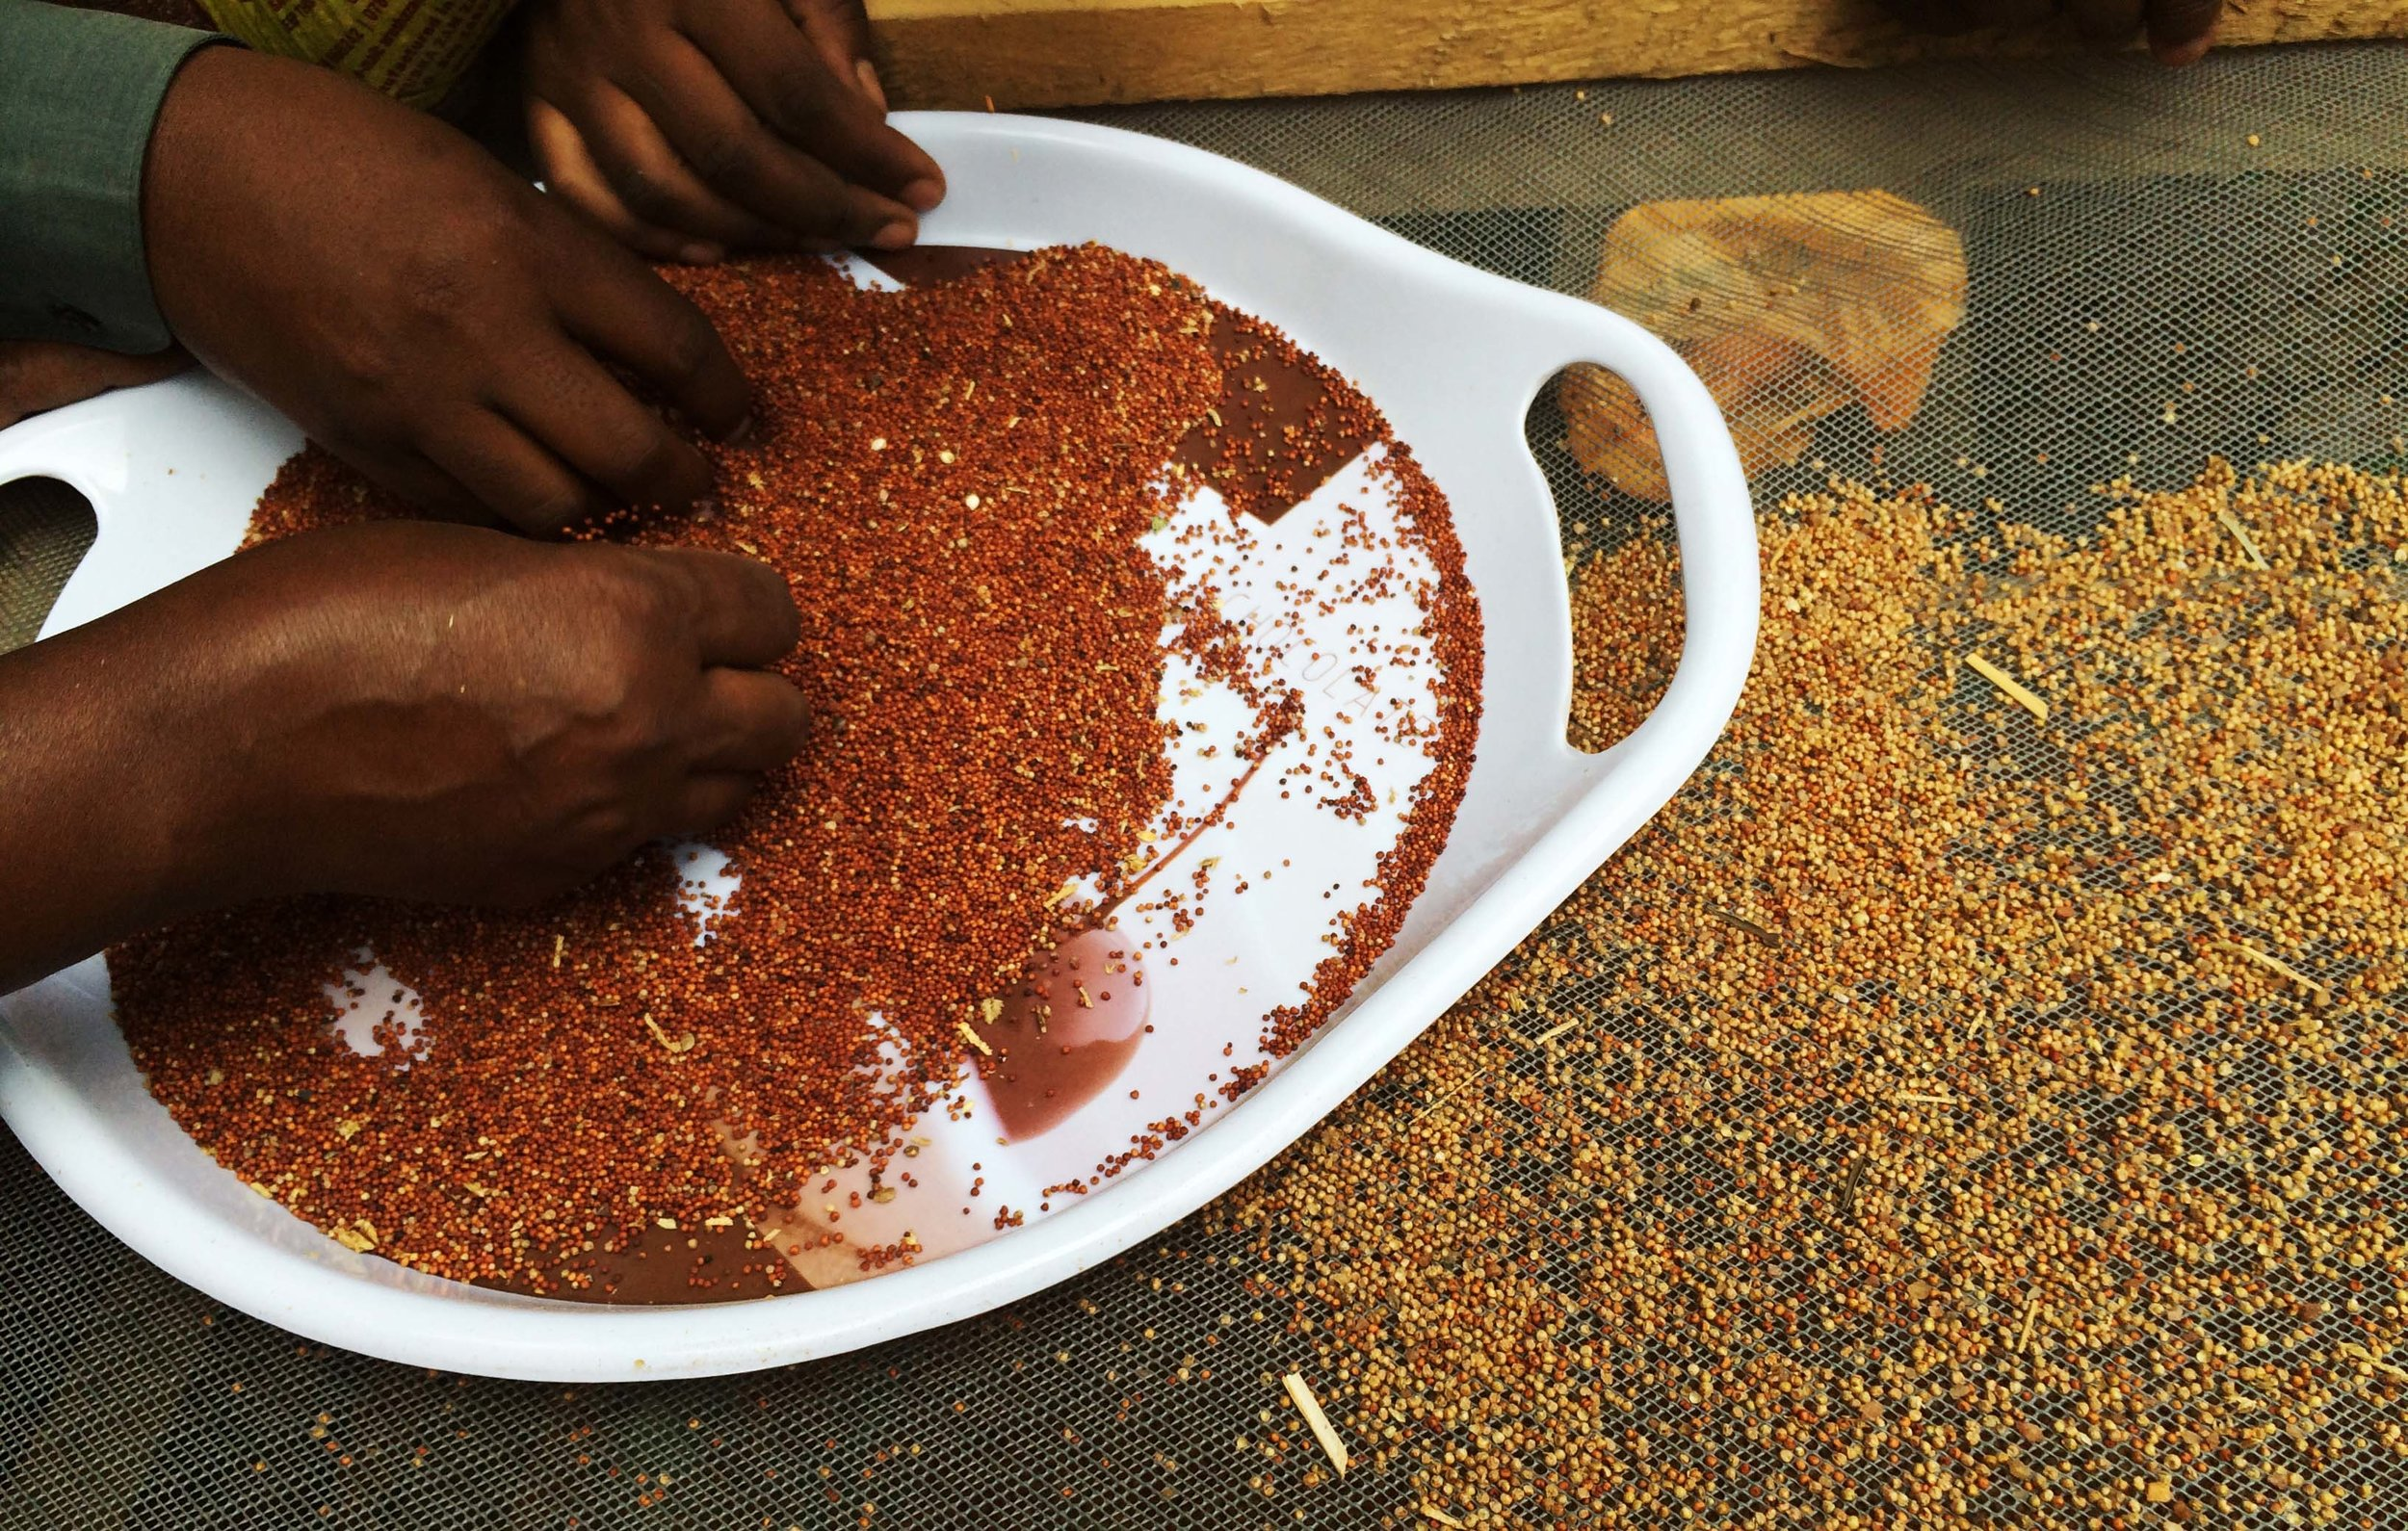 Seed saving: A practical overview for small-scale seed banking